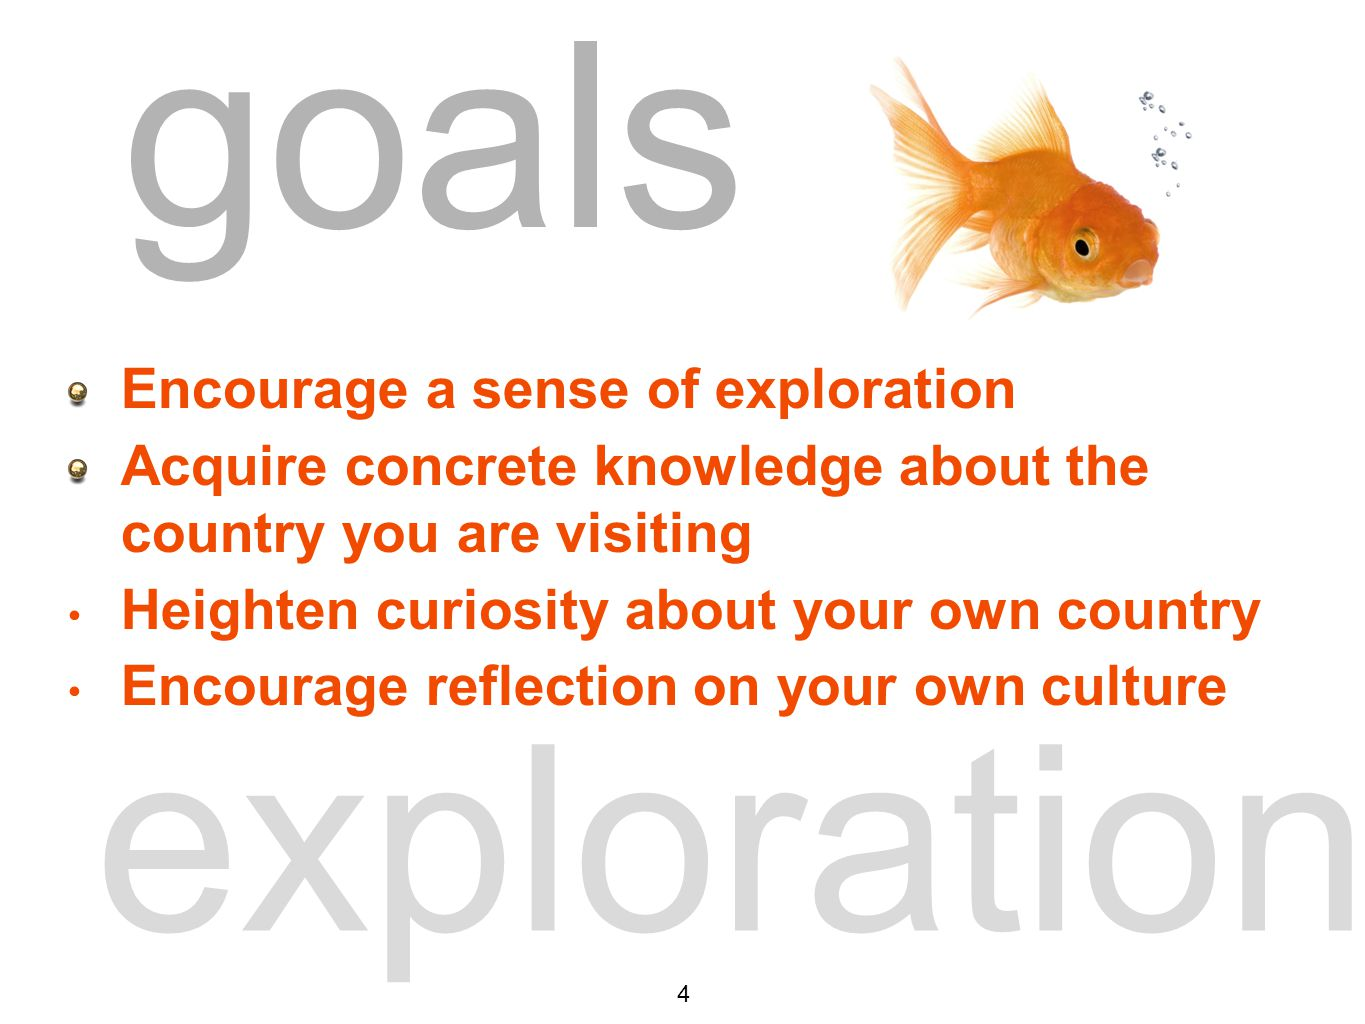 goals exploration Encourage a sense of exploration Acquire concrete knowledge about the country you are visiting Heighten curiosity about your own country Encourage reflection on your own culture goals 4